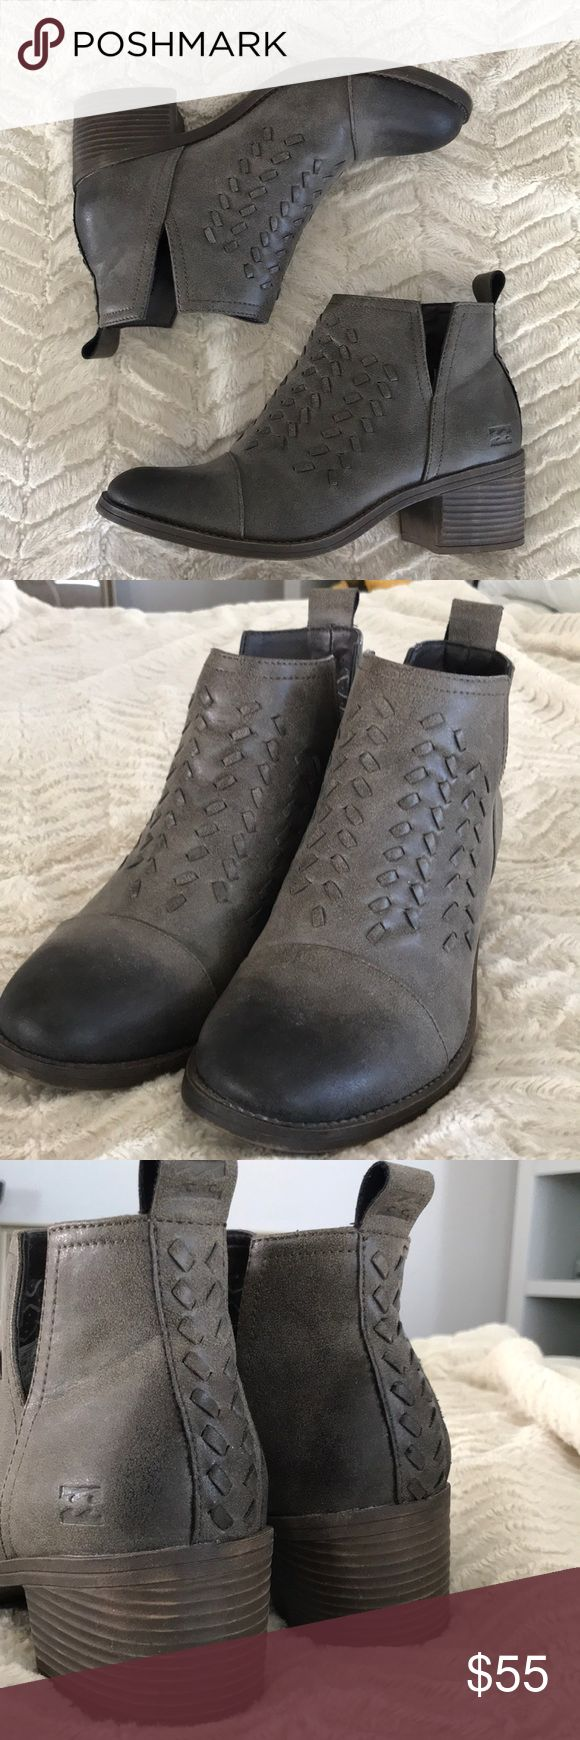 """Billabong ankle boots Billabong ankle boots size 7. Brand new and not worn. I need a size 7 1/2 ... cute boot. Leather. 2"""" heel. Dark gray Billabong Shoes Ankle Boots & Booties"""